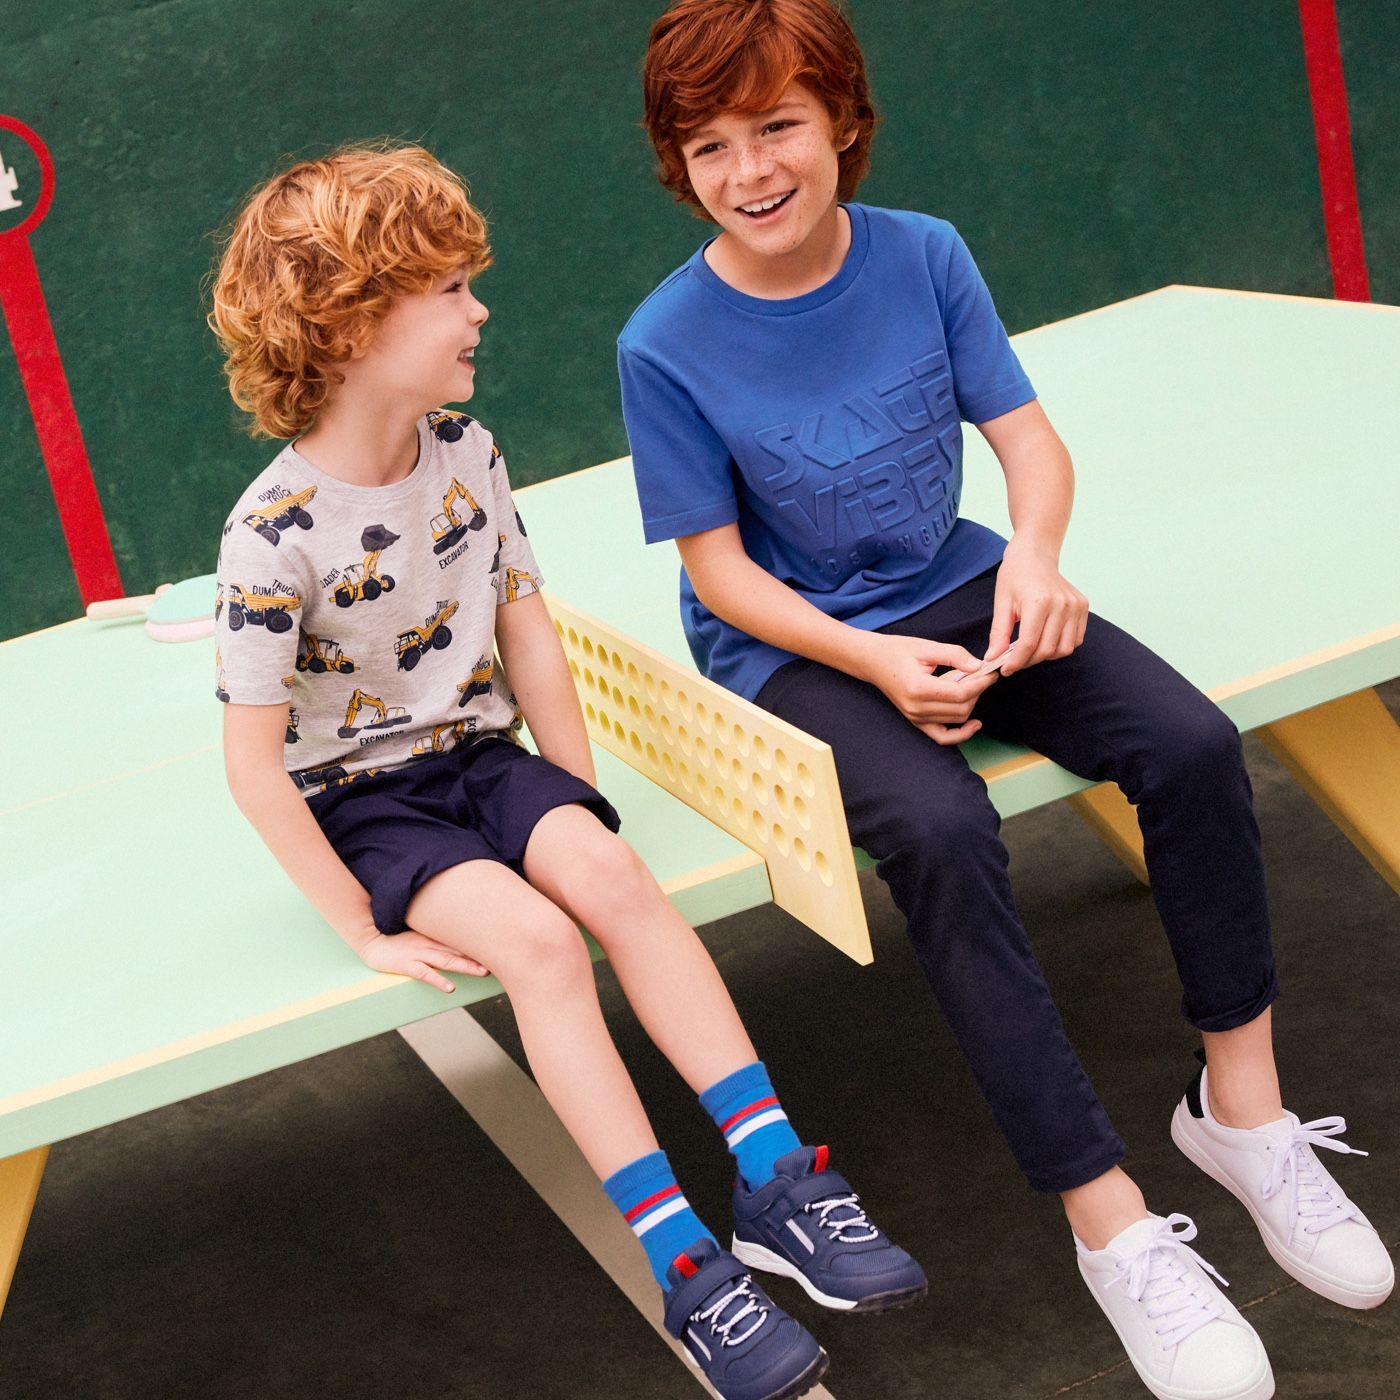 Two smiling boys sitting on table, one wearing navy jeans and blue t-shirt, the other wearing navy shorts and heavy machine print t-shirt.